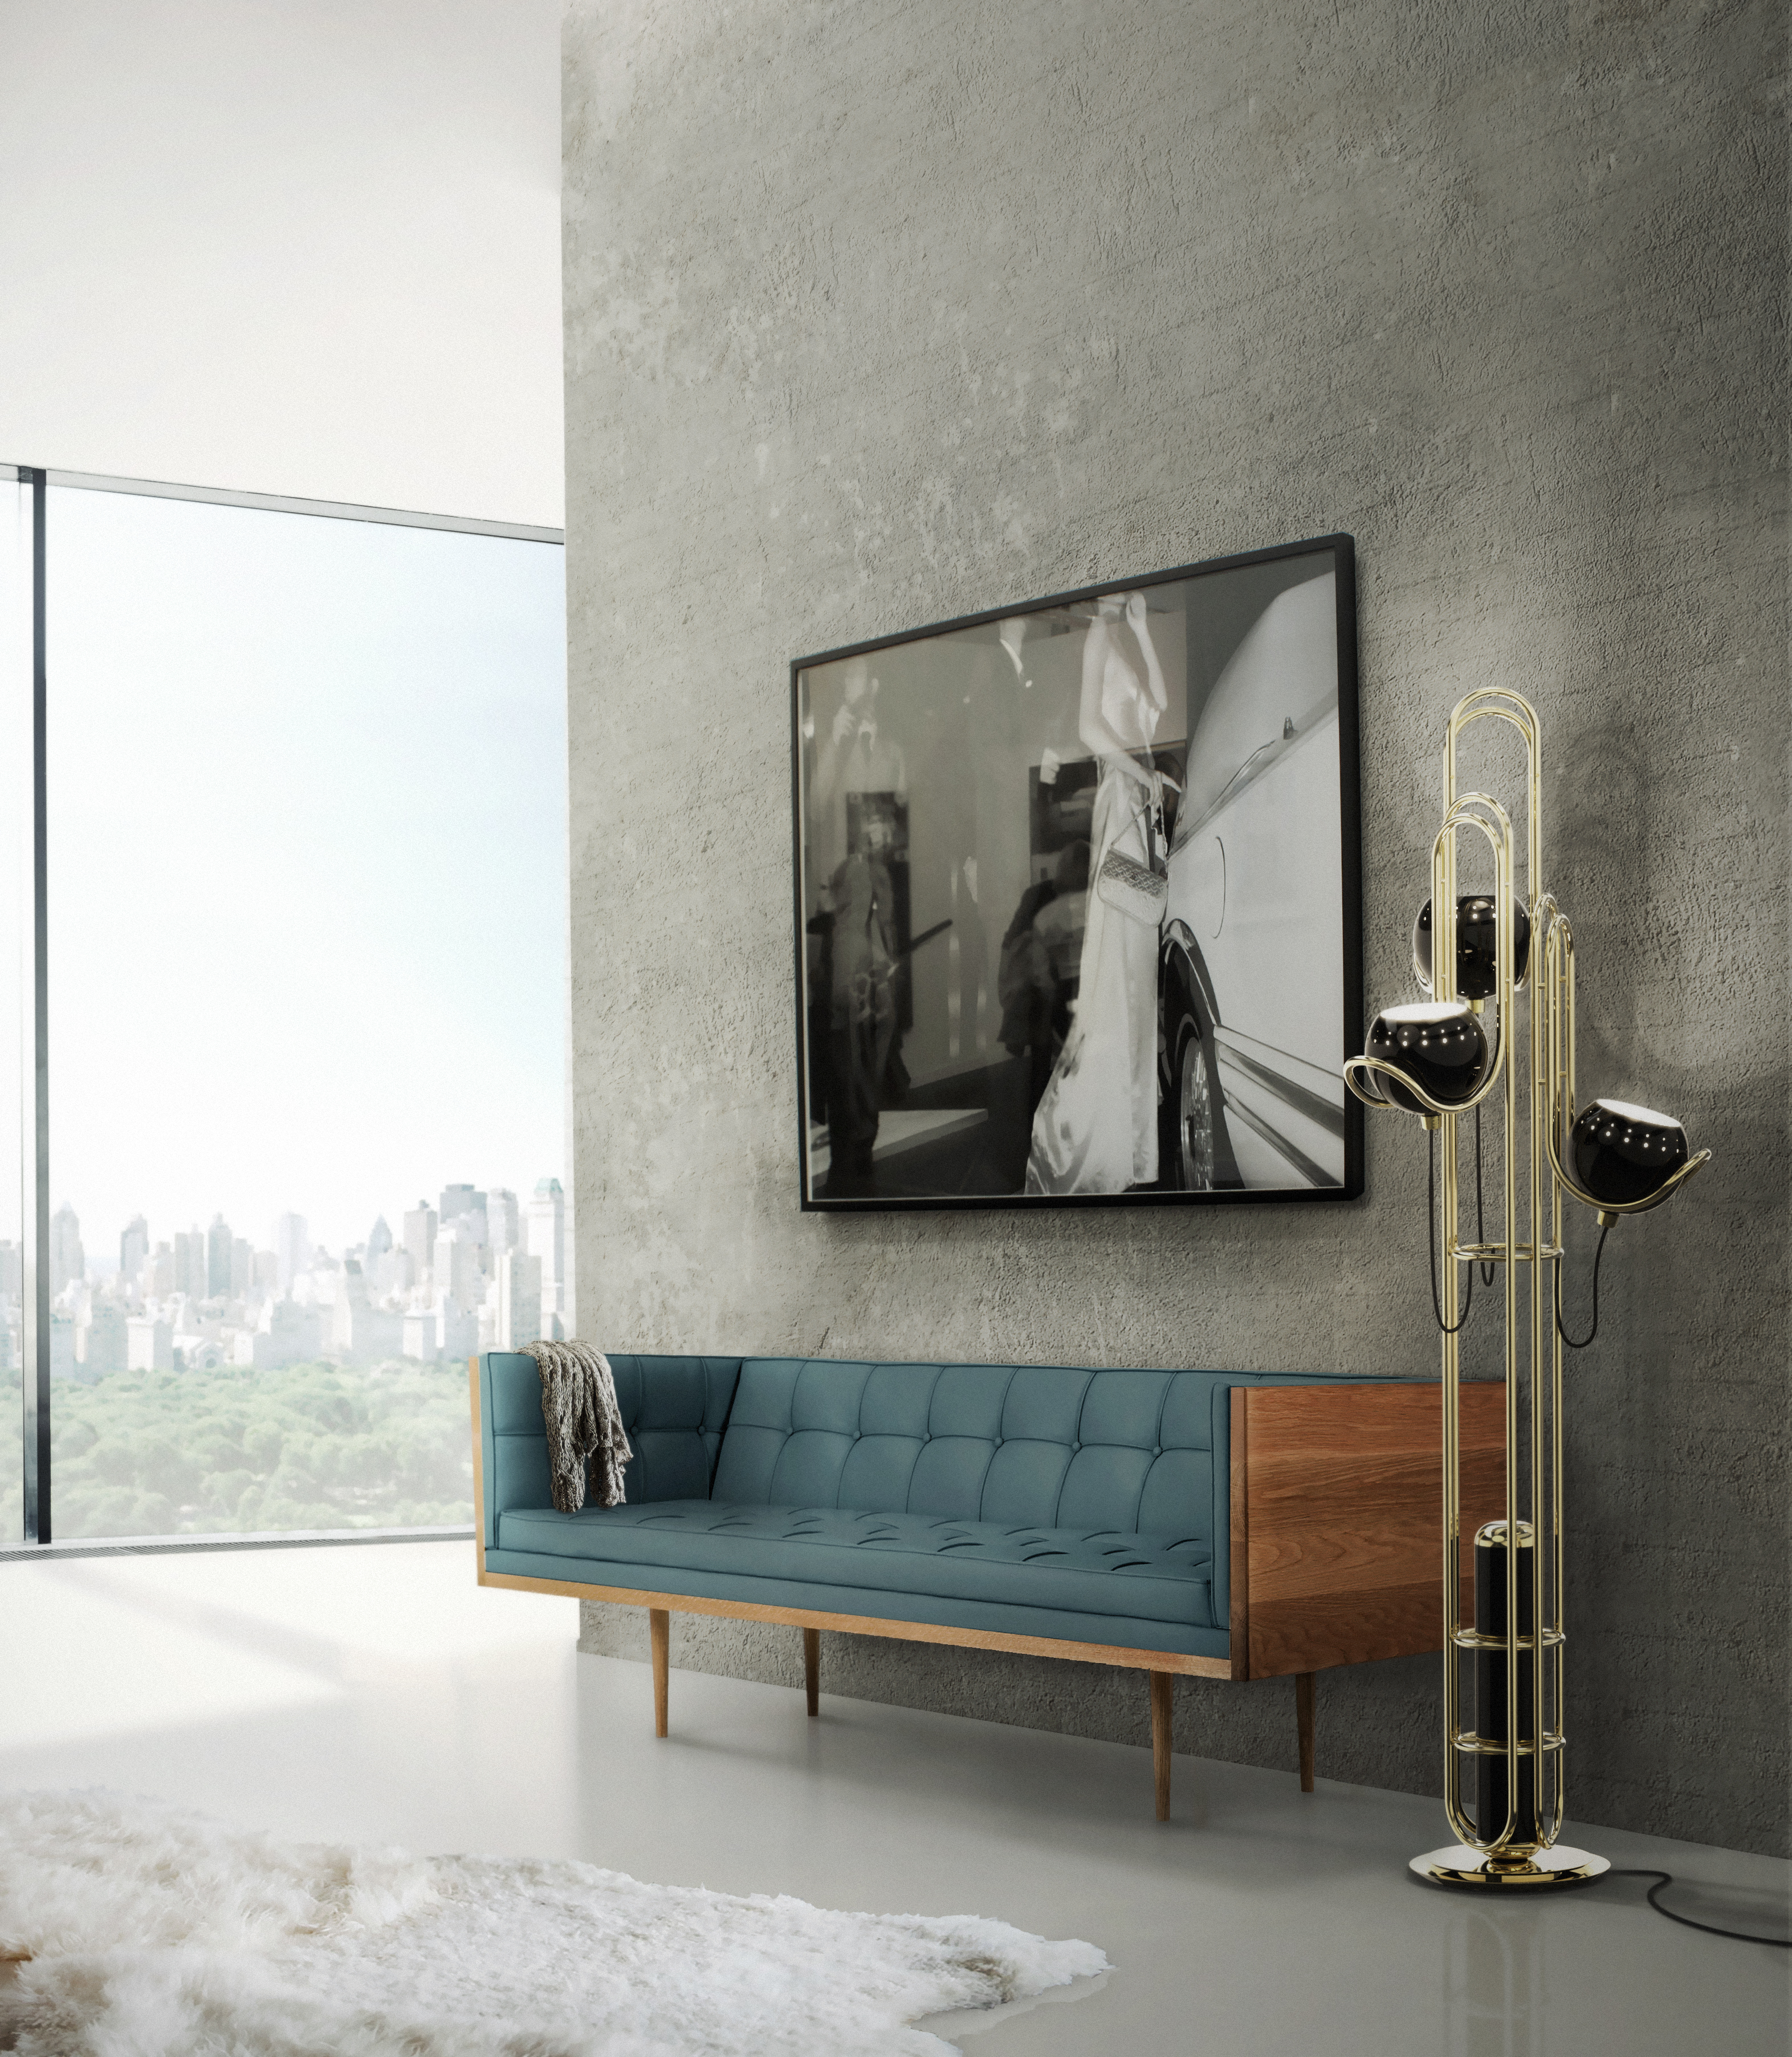 Bright Ideas Modern Floor Lamp Inspired in The Golden Years of Space 2